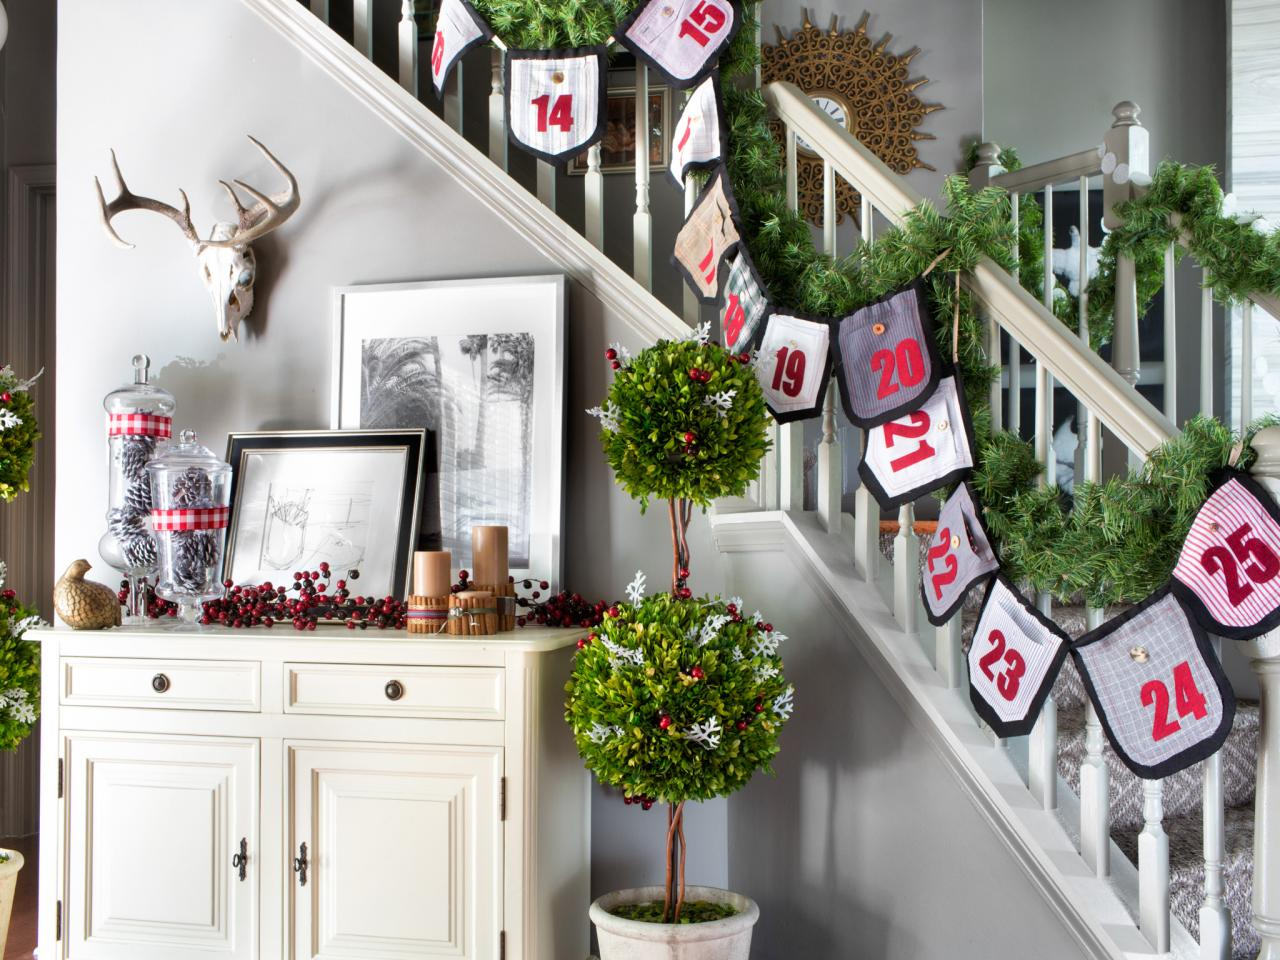 Calendar Decoration Ideas : Indoor projects to try instead of shopping on black